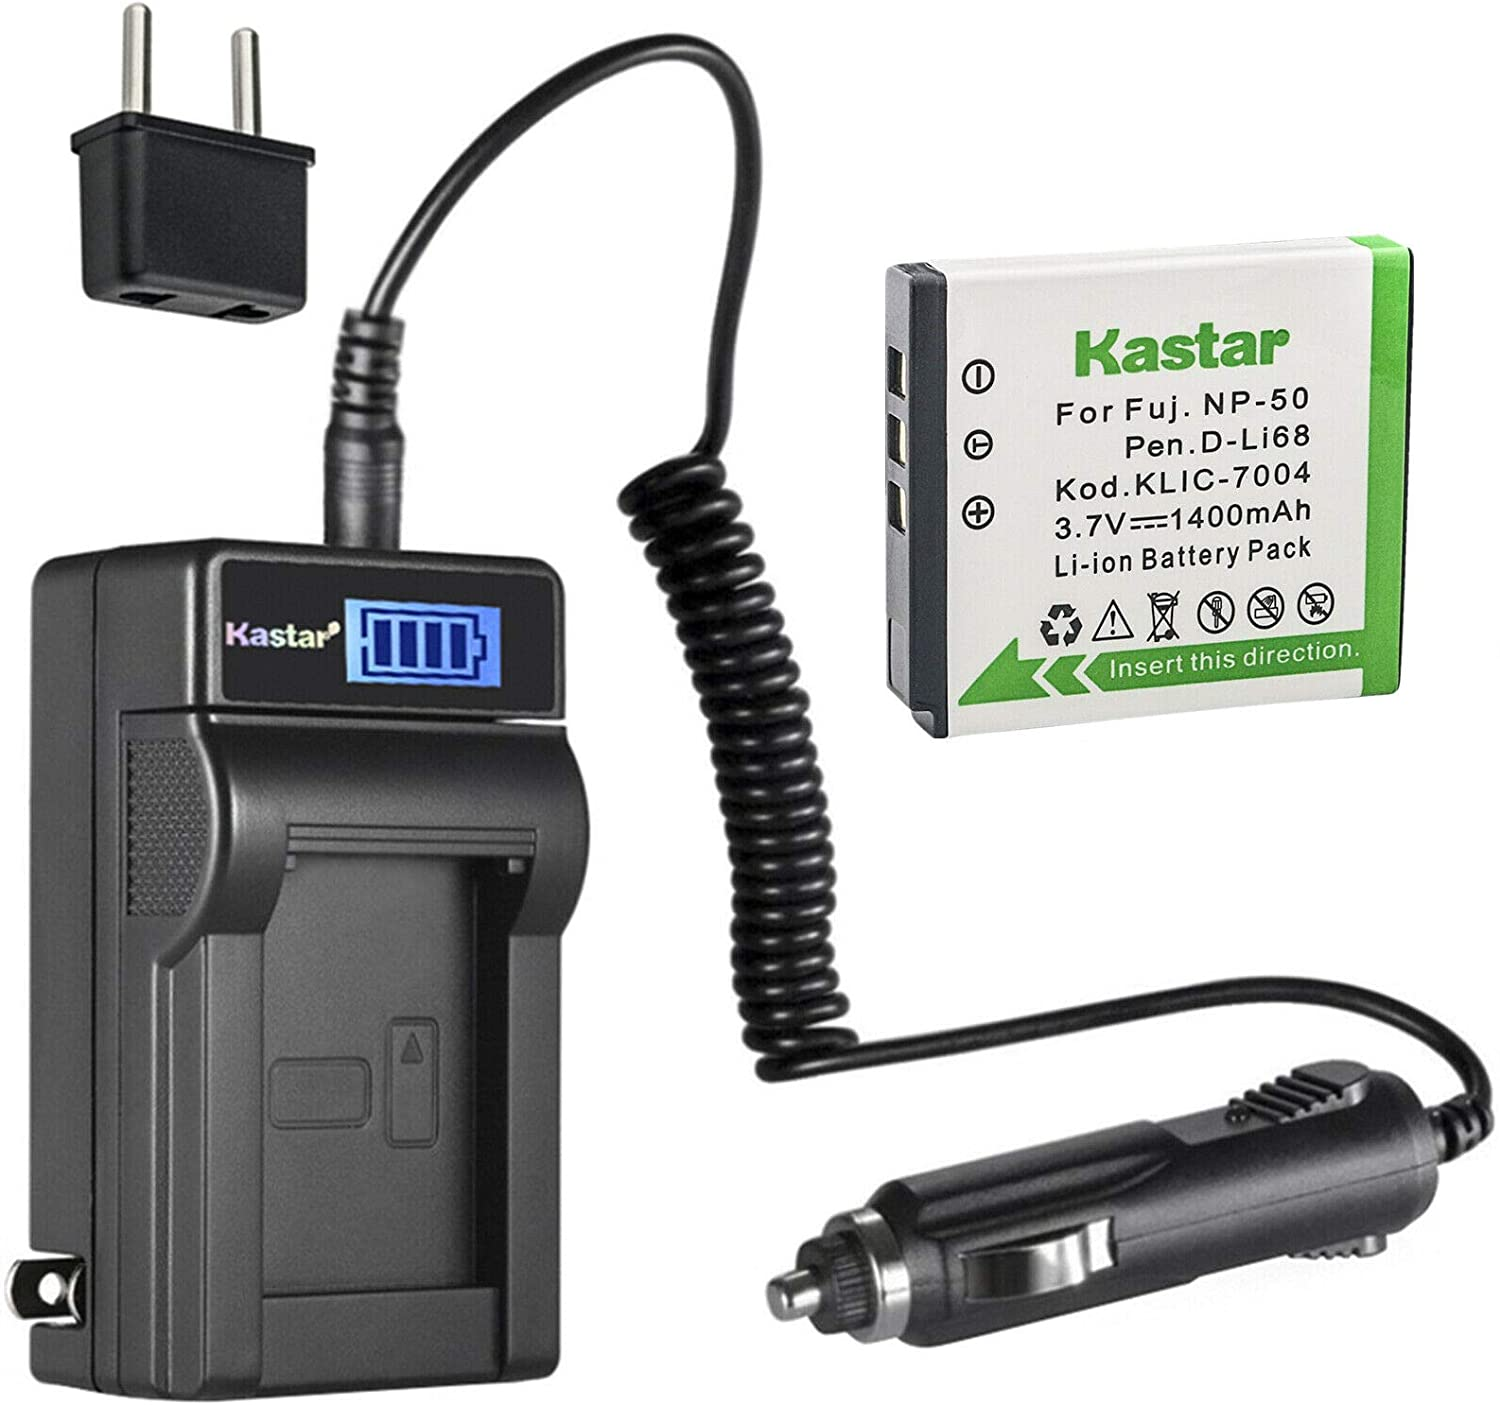 Kastar 1-Pack KLIC-7004 Battery and Bombing new work Compatible AC wi Charger LCD Finally popular brand